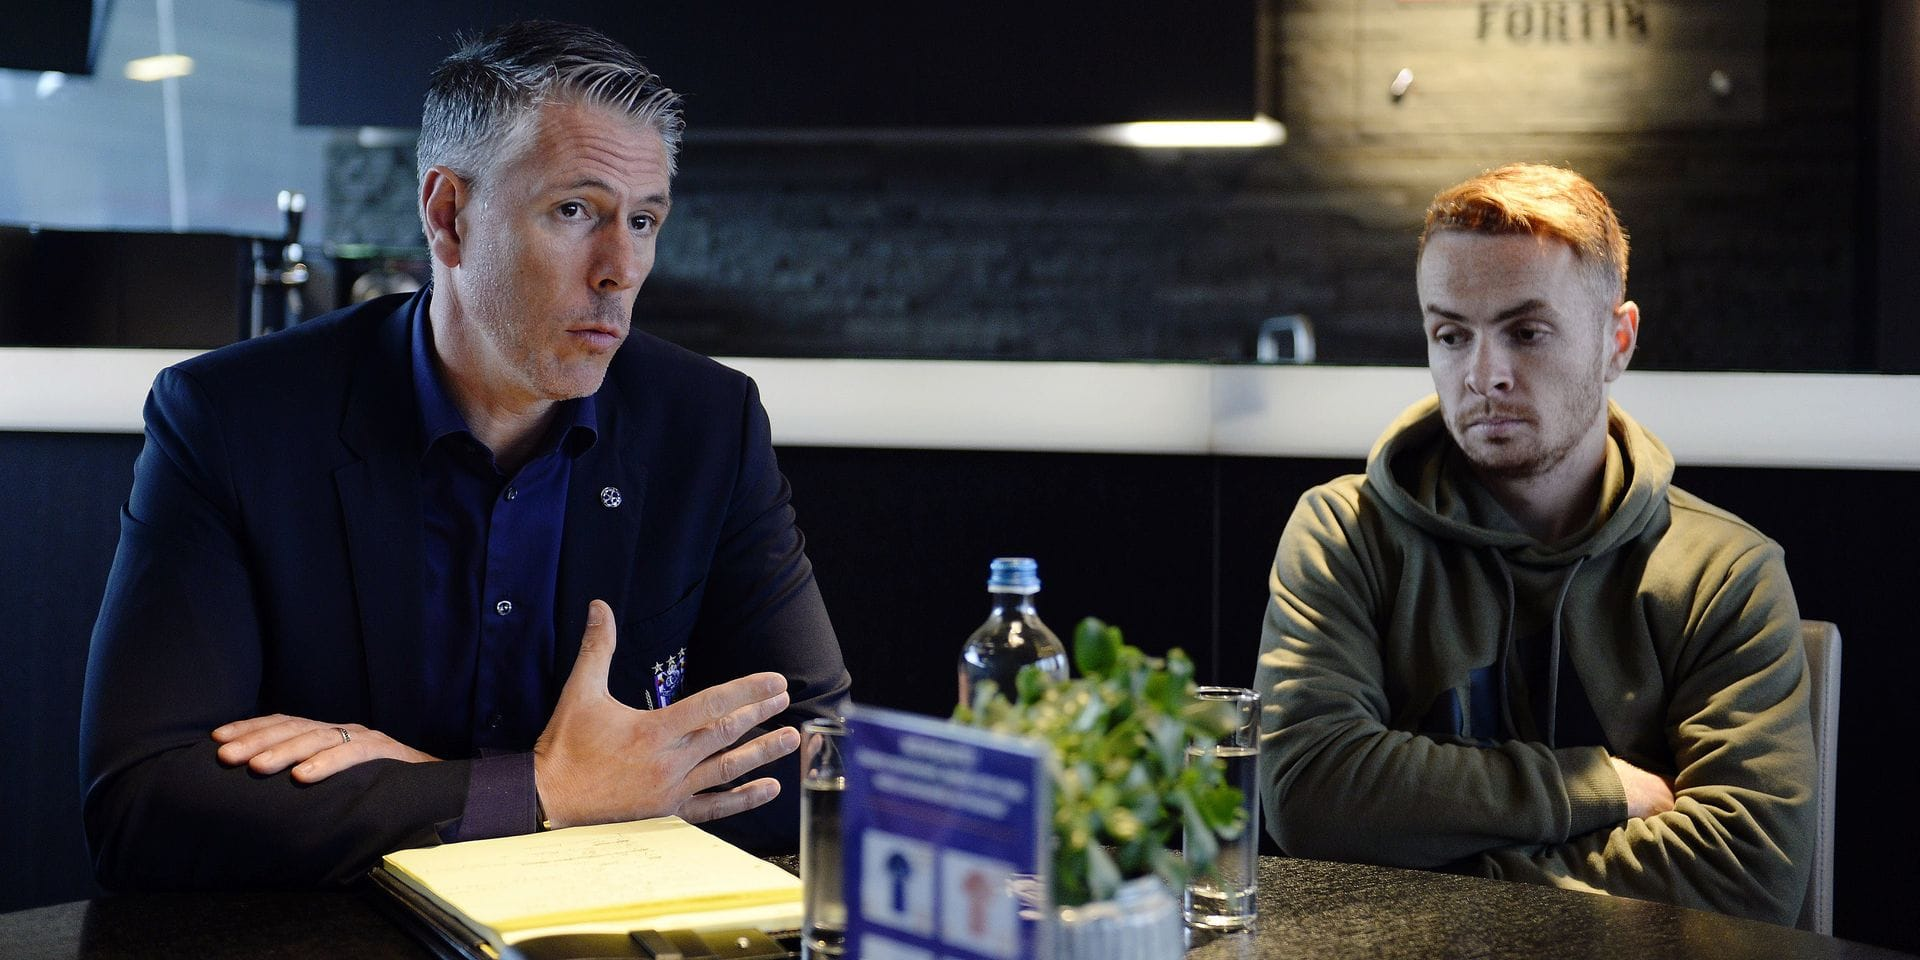 BRUSSELS, BELGIUM - APRIL 8 : Michael Verschueren and Adrien Trebel midfielder of Anderlecht talking with the press pictured during after the Jupiler Pro League playoff 1 match between RSC Anderlecht and Royal Antwerp on April 08, 2019 in Brussels, Belgium, 8/04/2019 ( Photo by Philippe Crochet/ Photonews